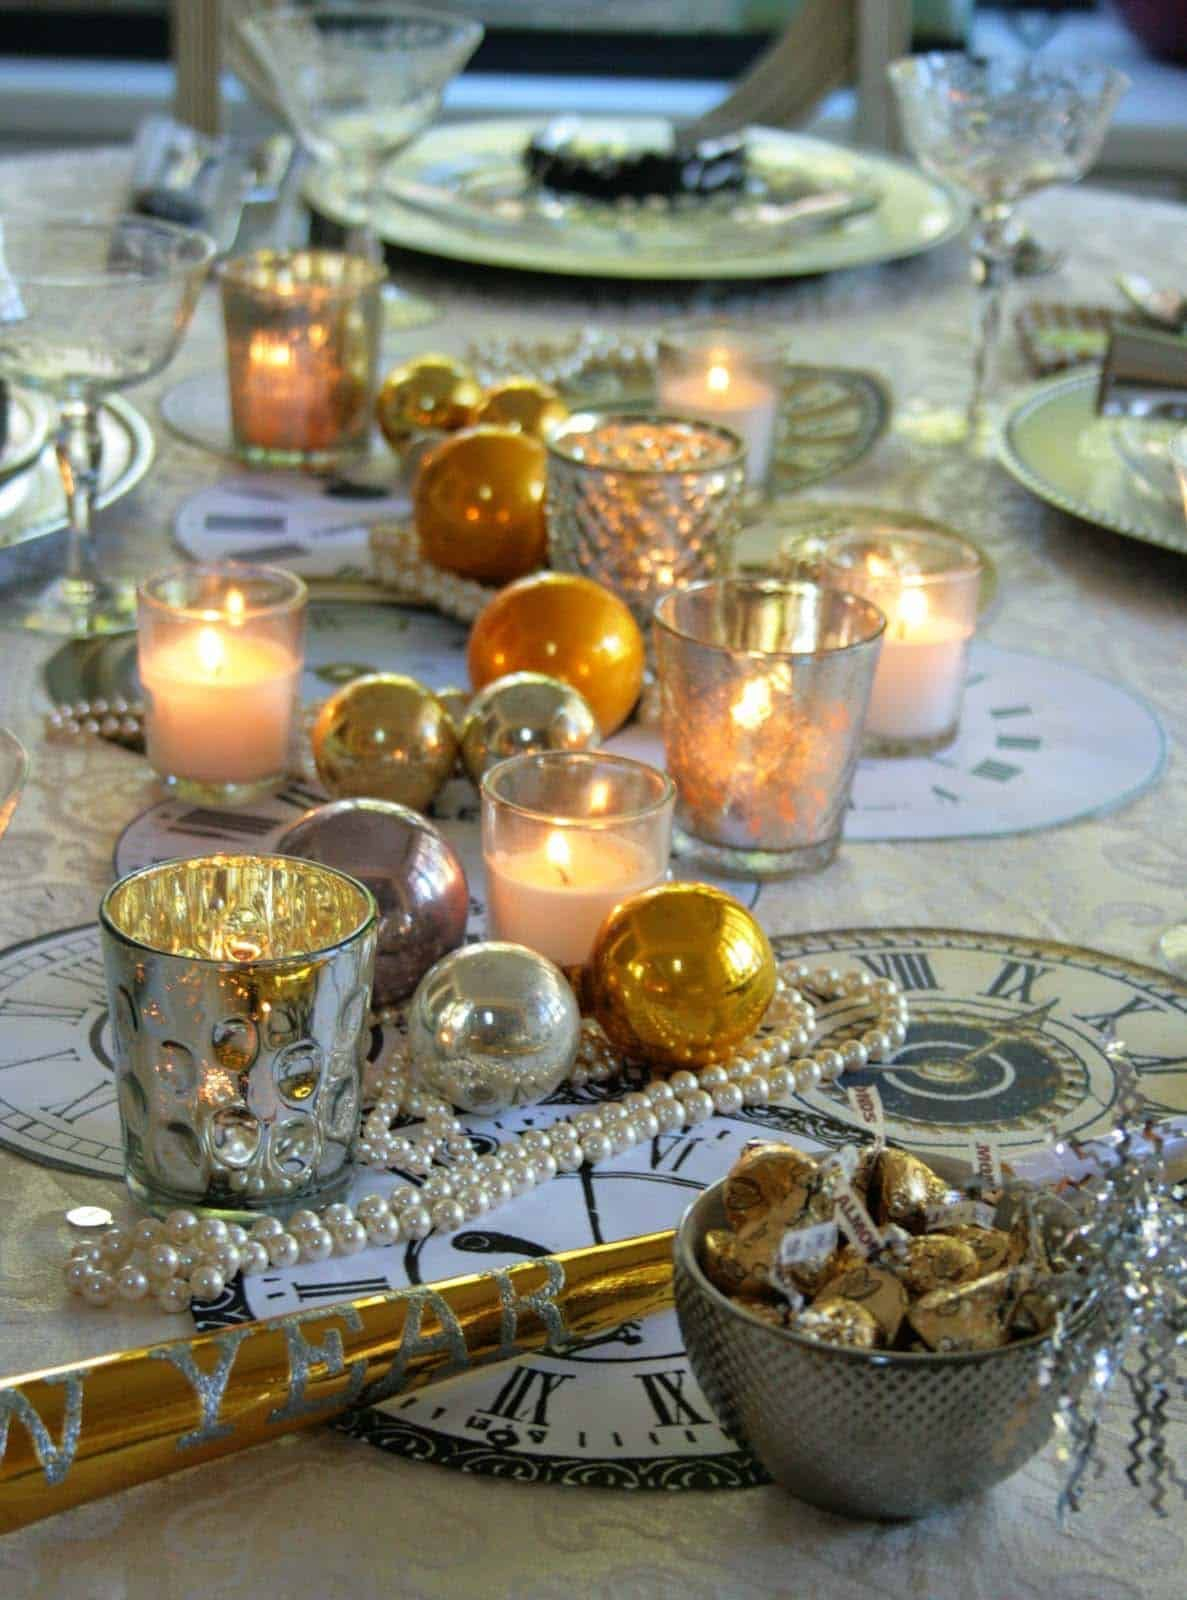 26 Festive and glamorous party table settings for New Year's Eve